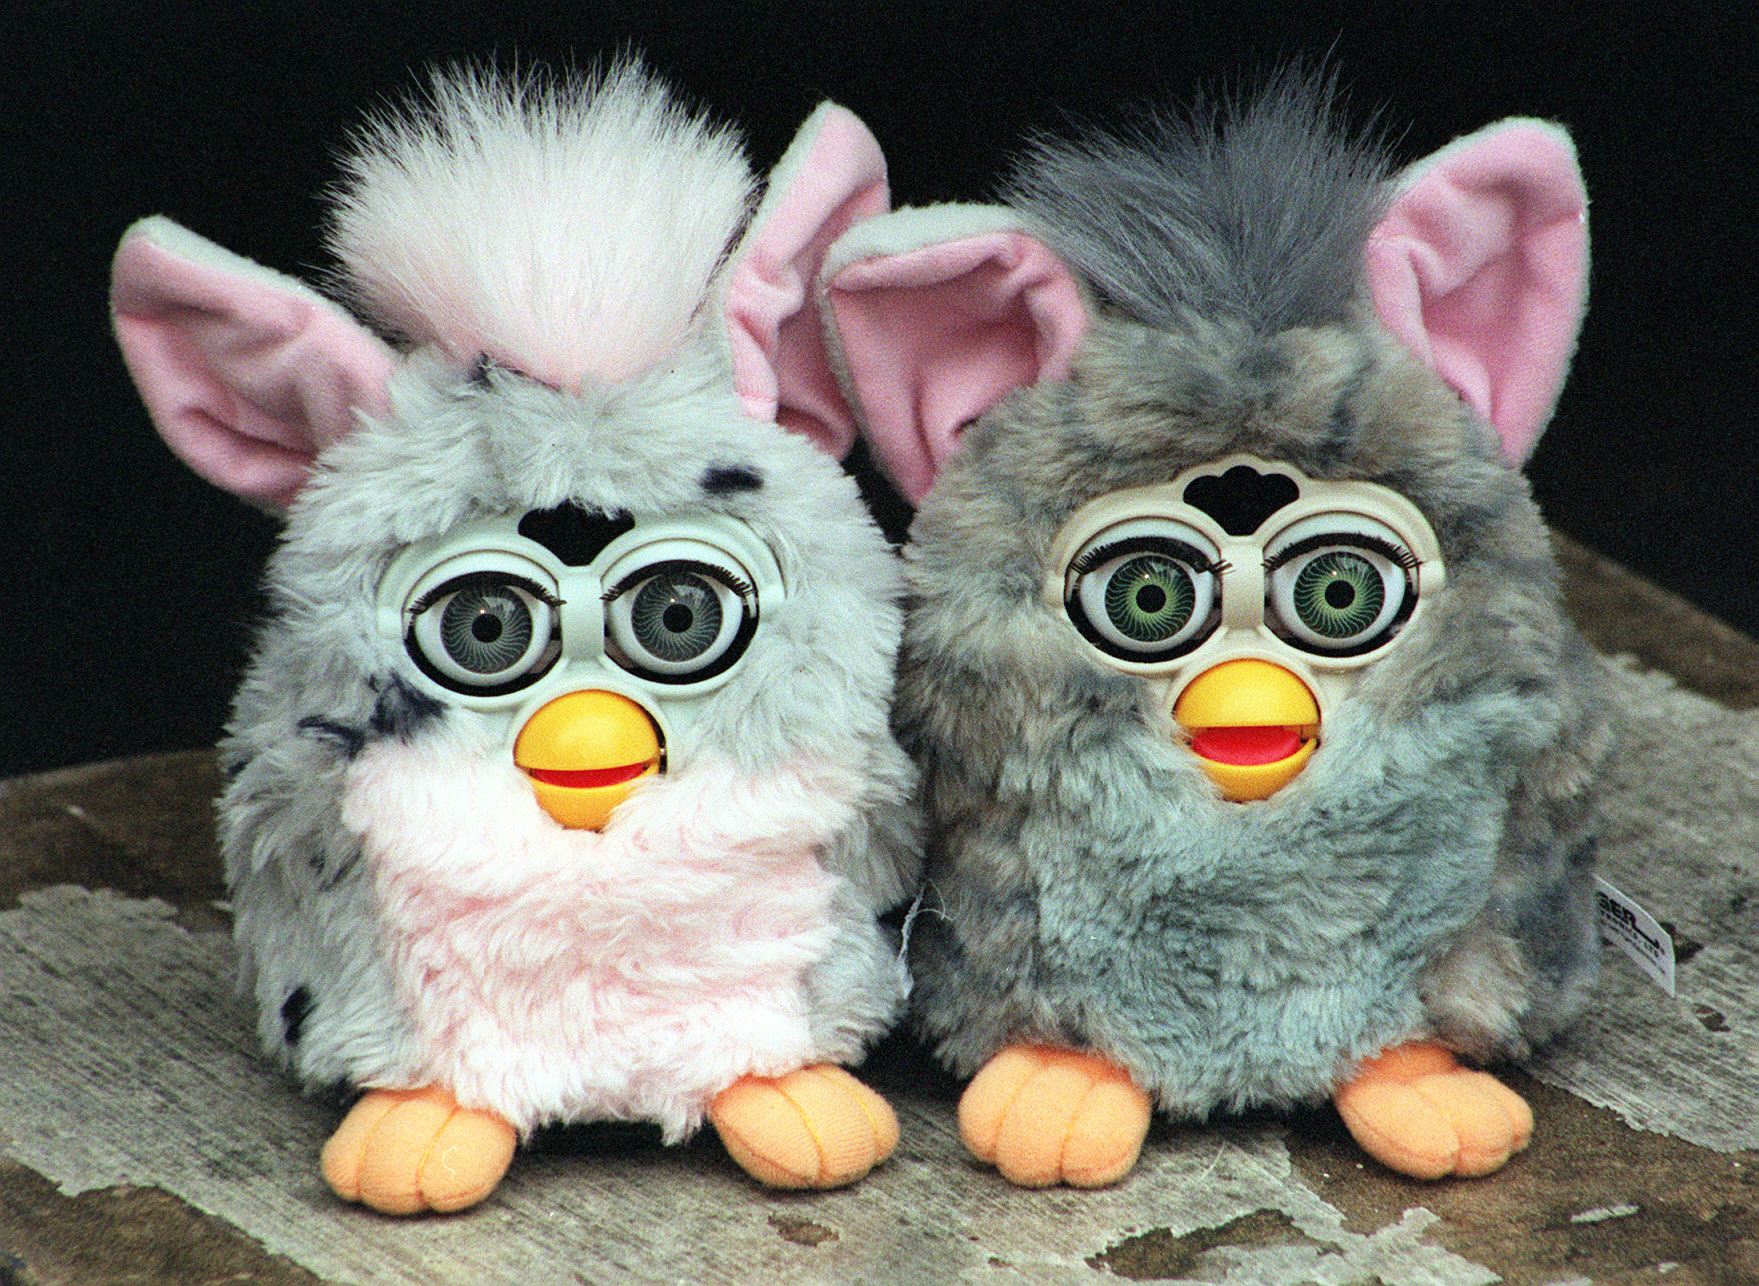 Most Popular Toys of the 90s: Furby